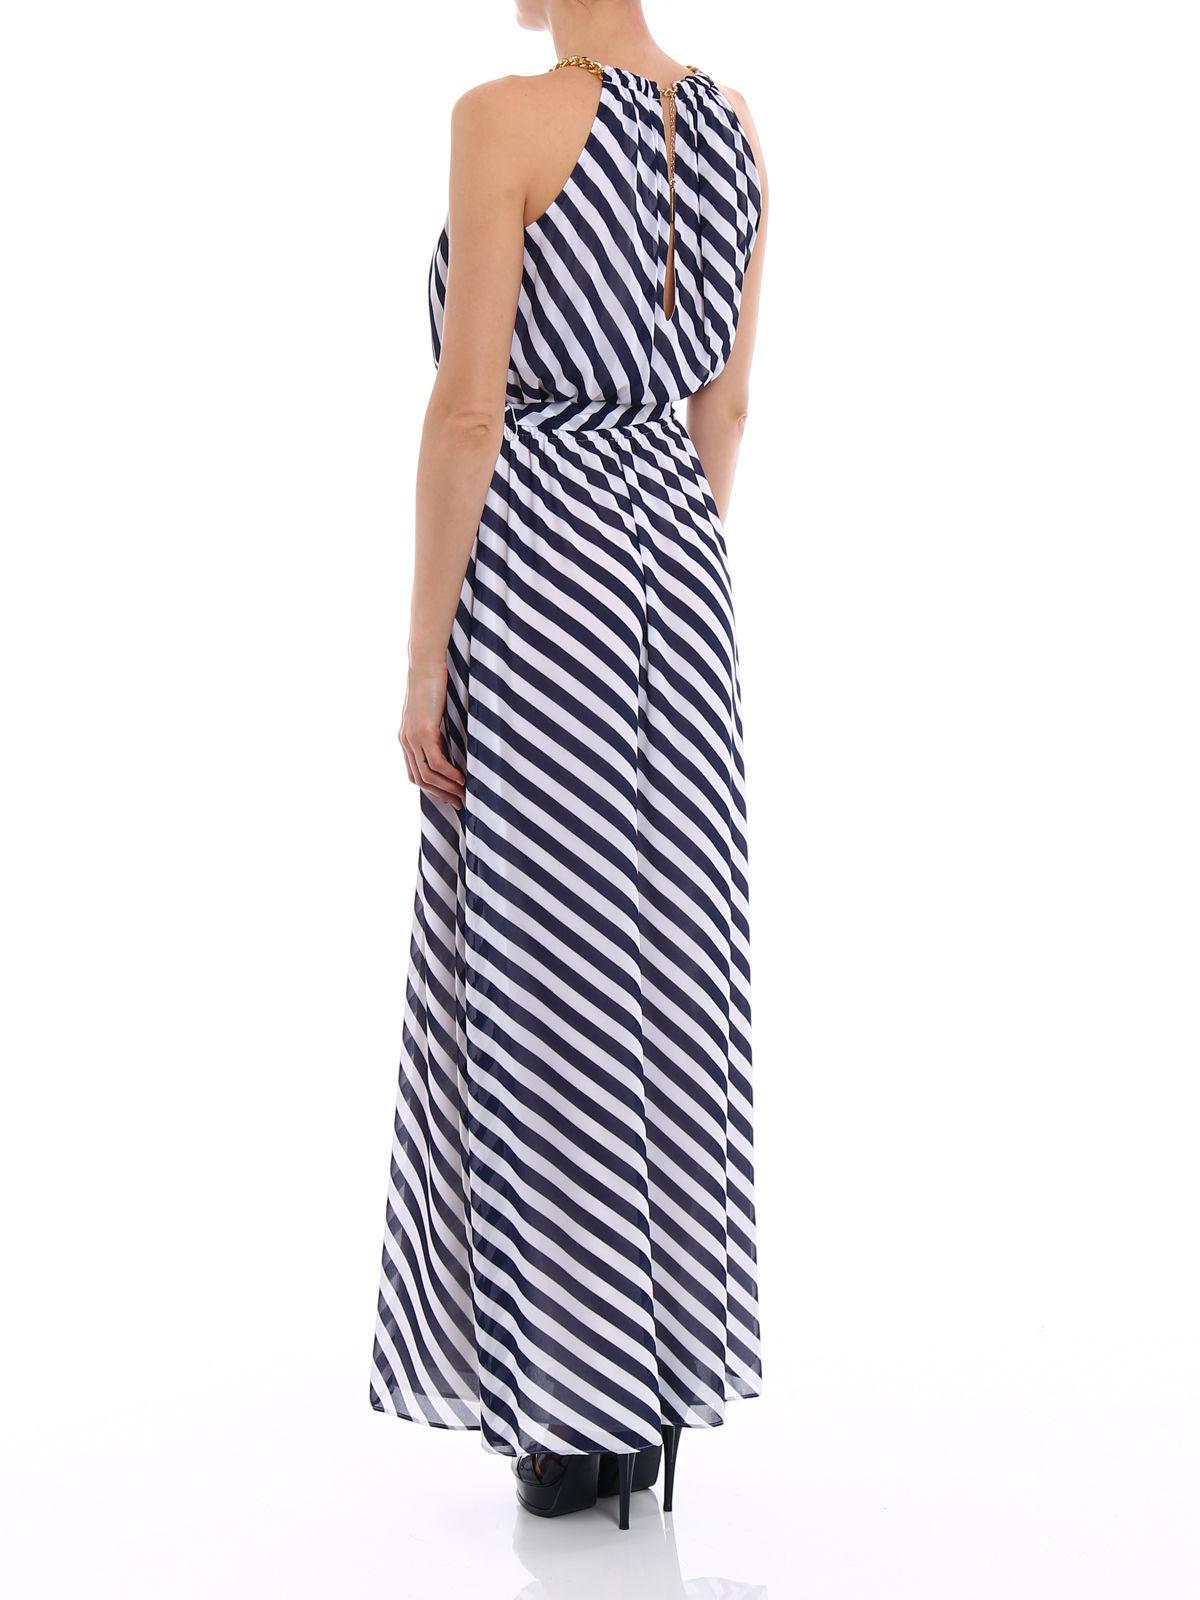 011713992c Lyst - Michael Kors Chain Neck Maxi Dress in Blue